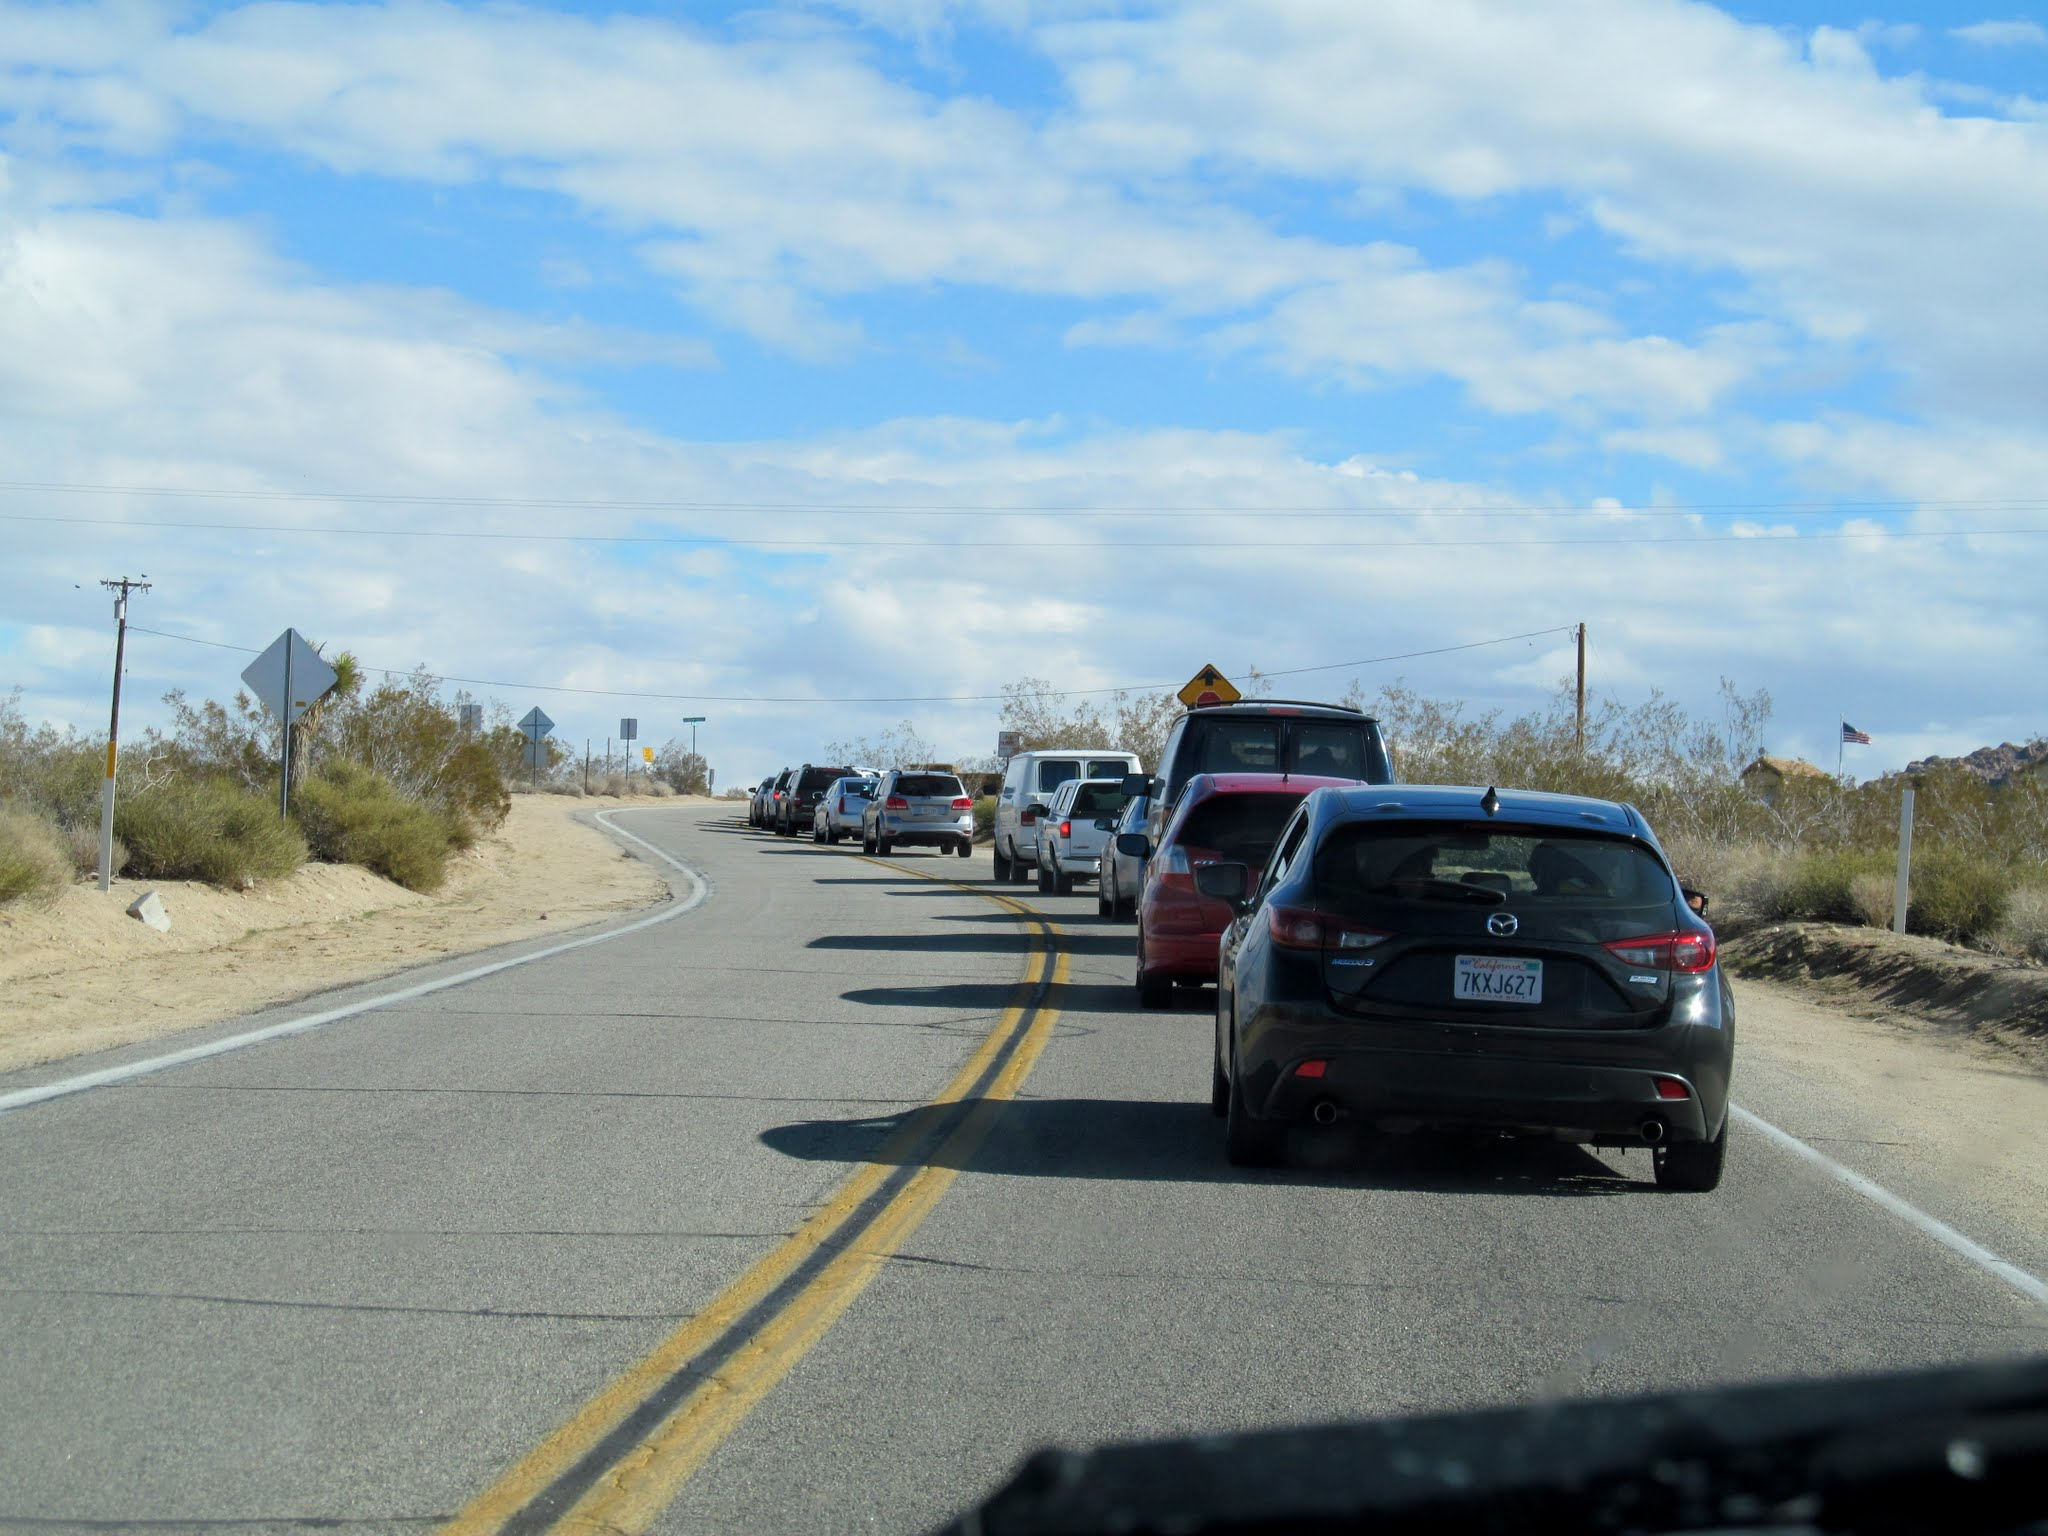 Photo: Cars backed up at the entrance to Joshua Tree